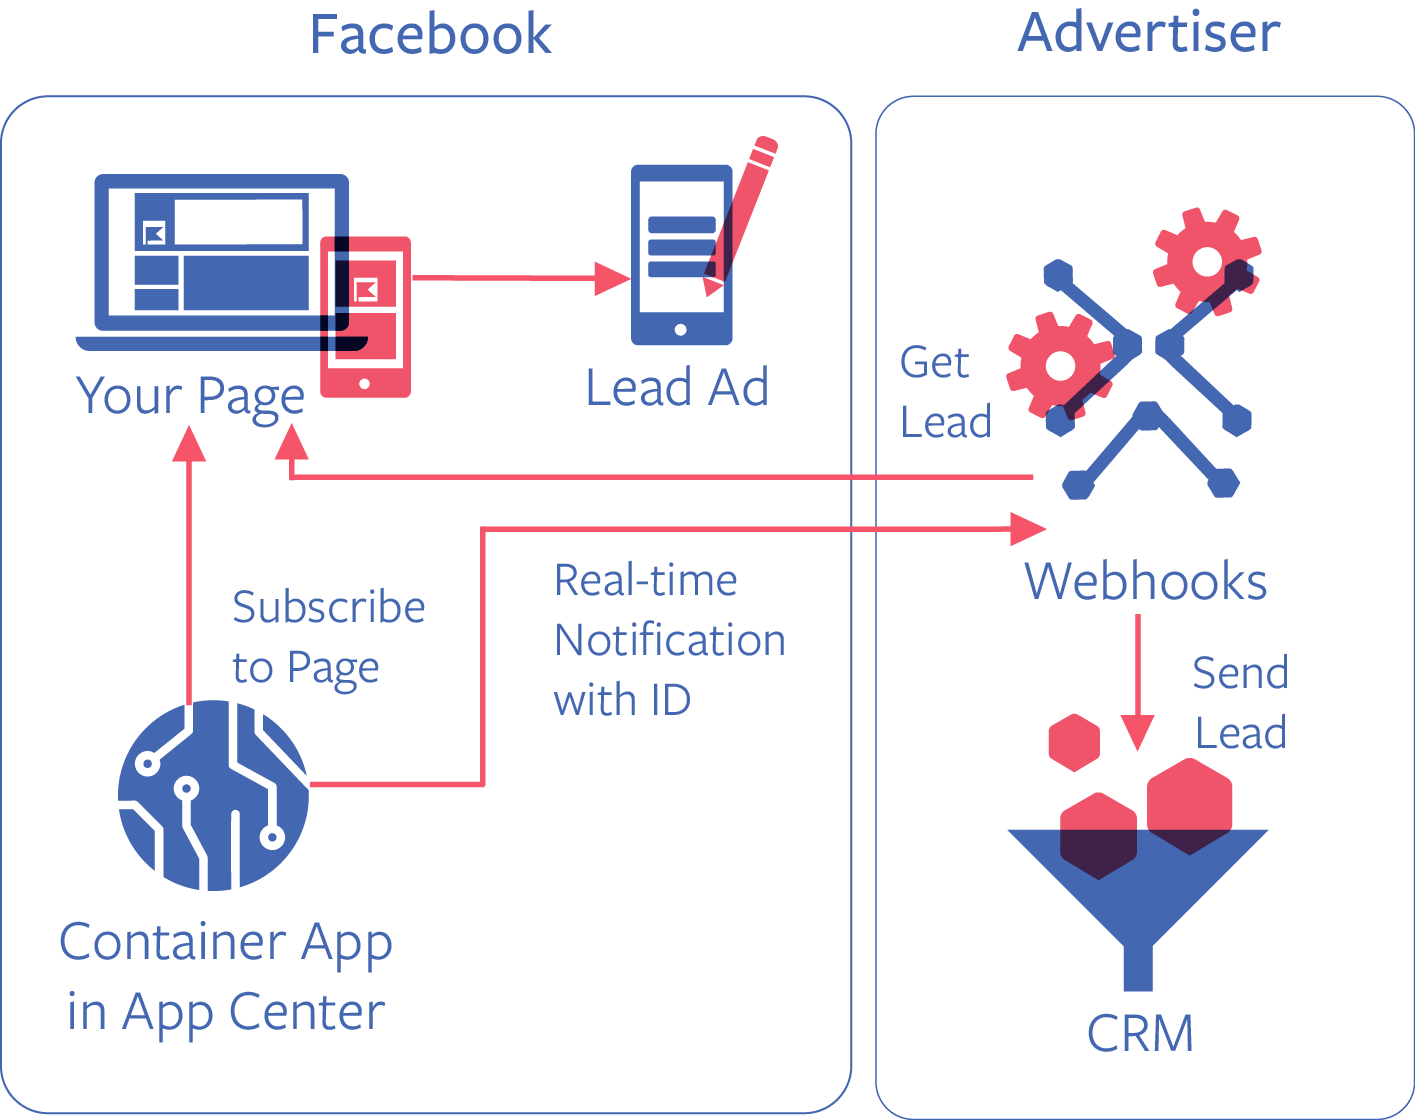 Integración formularios clientes potenciales a través de la API de Facebook Marketing